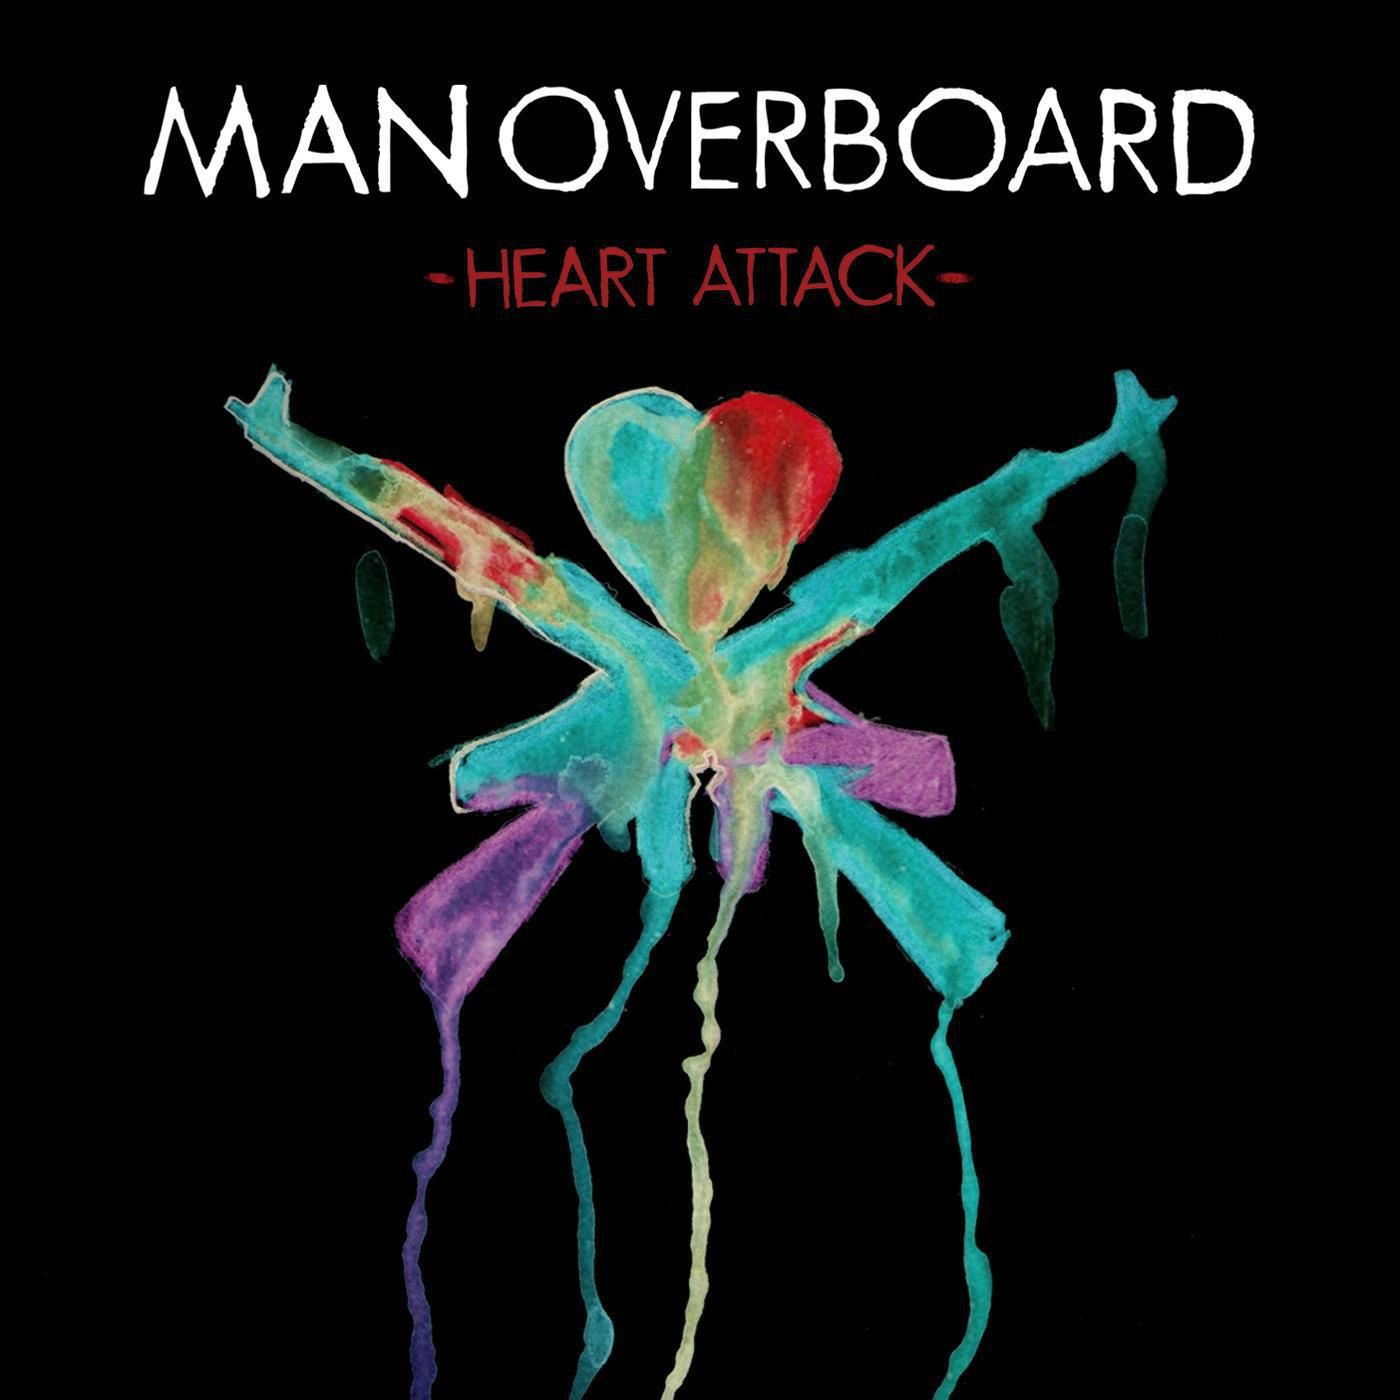 Heart Attack by Man Overboard (With images) | News songs ...